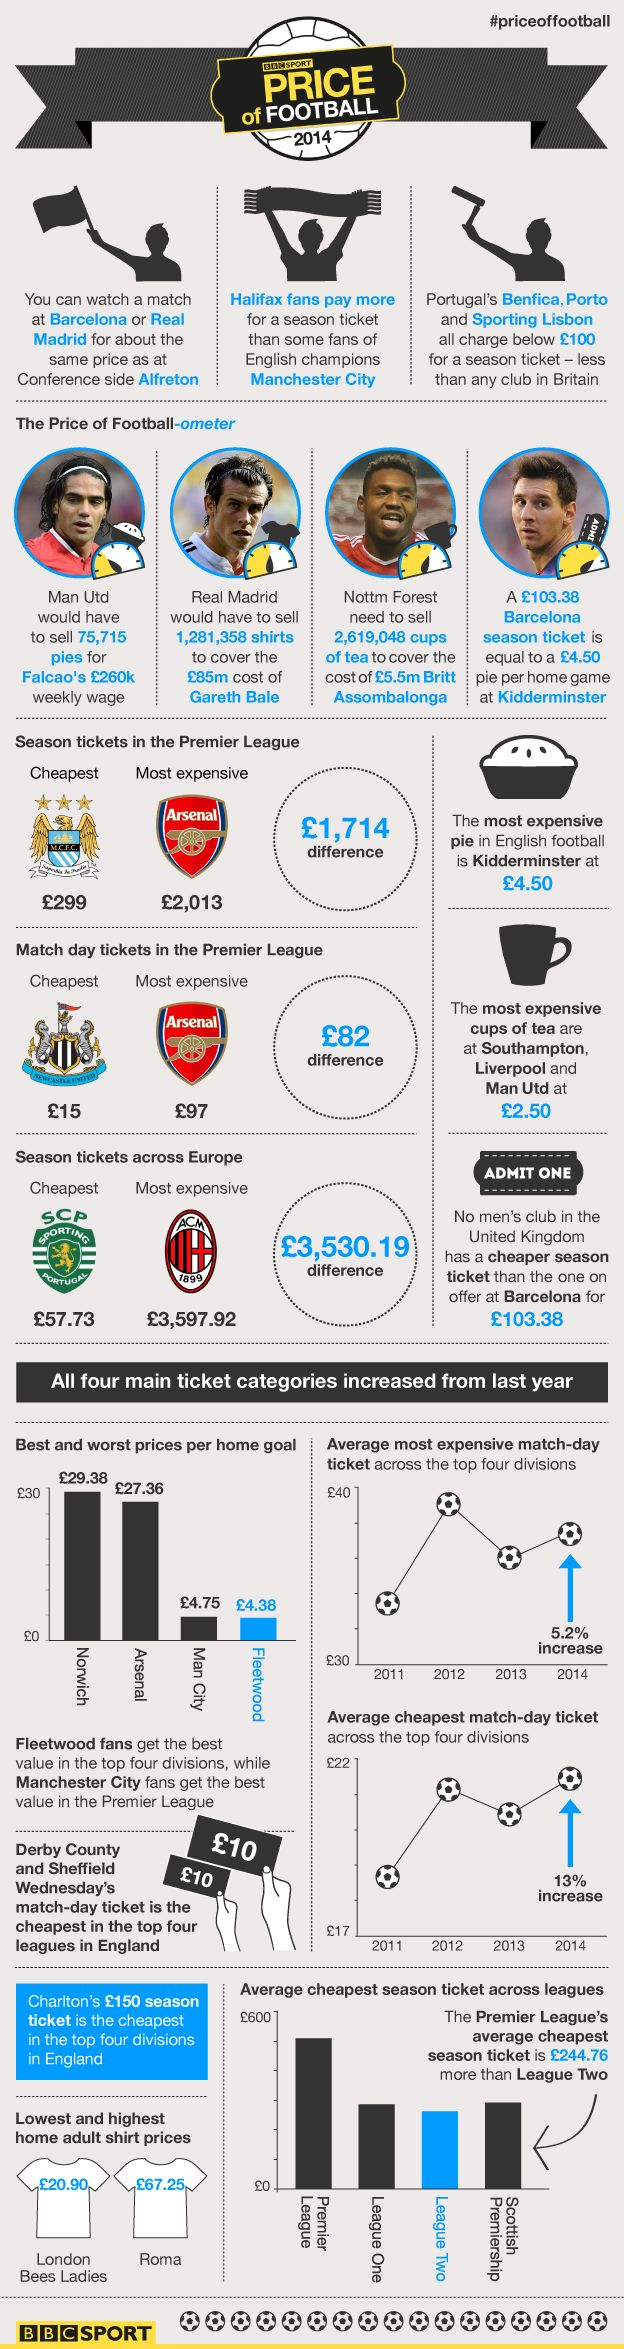 this is an infographic highlighting some of the key stats from the bbc sport price of